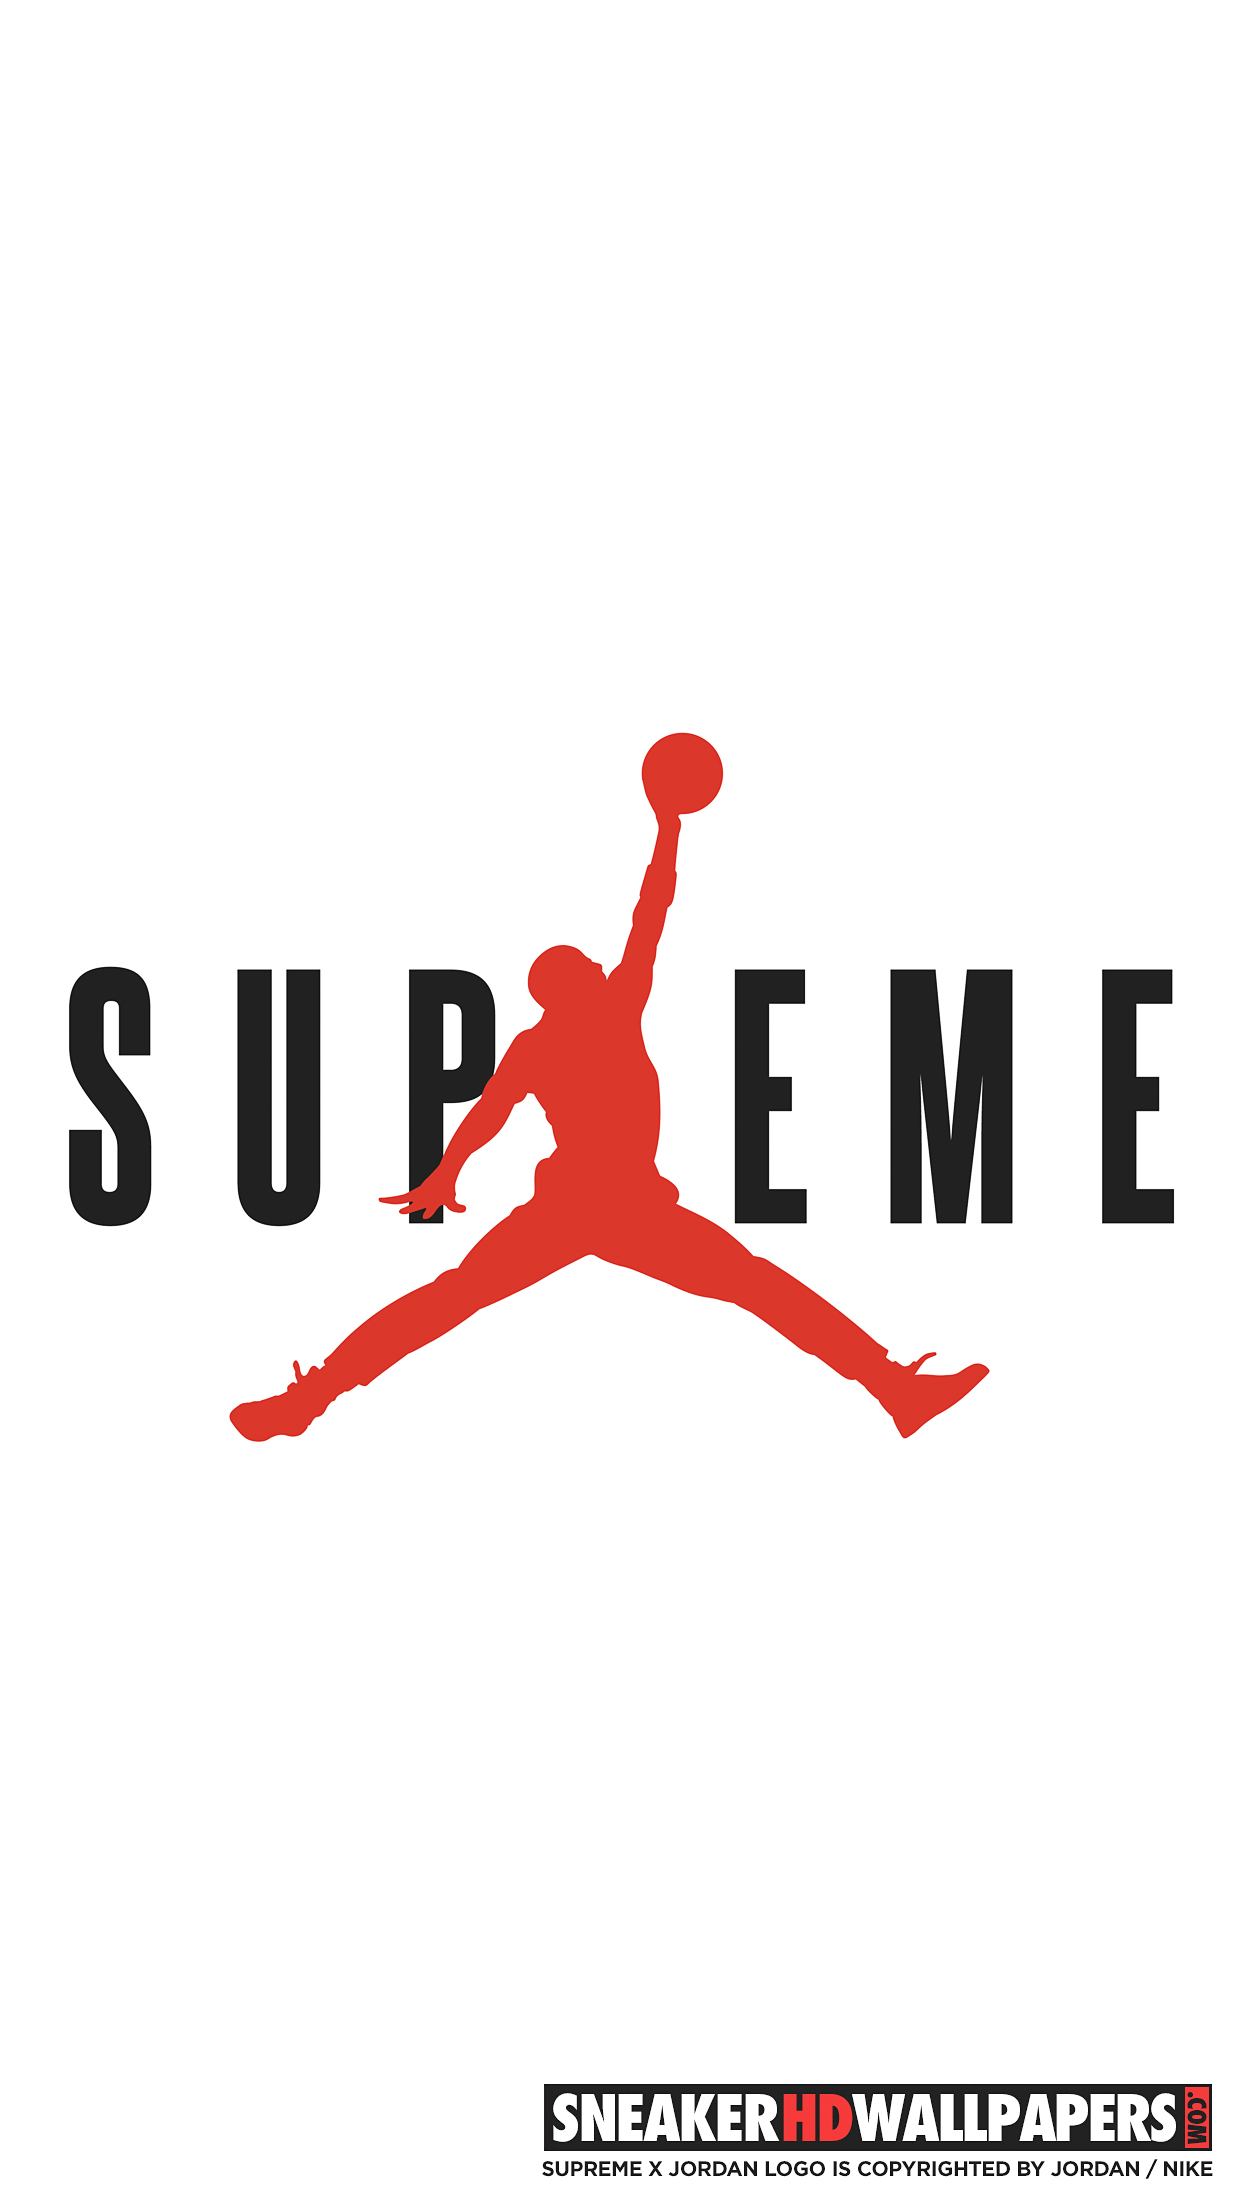 4K wallpaper Supreme x Jordan HD wallpaper Supreme x Jordan iPhone 1242x2208